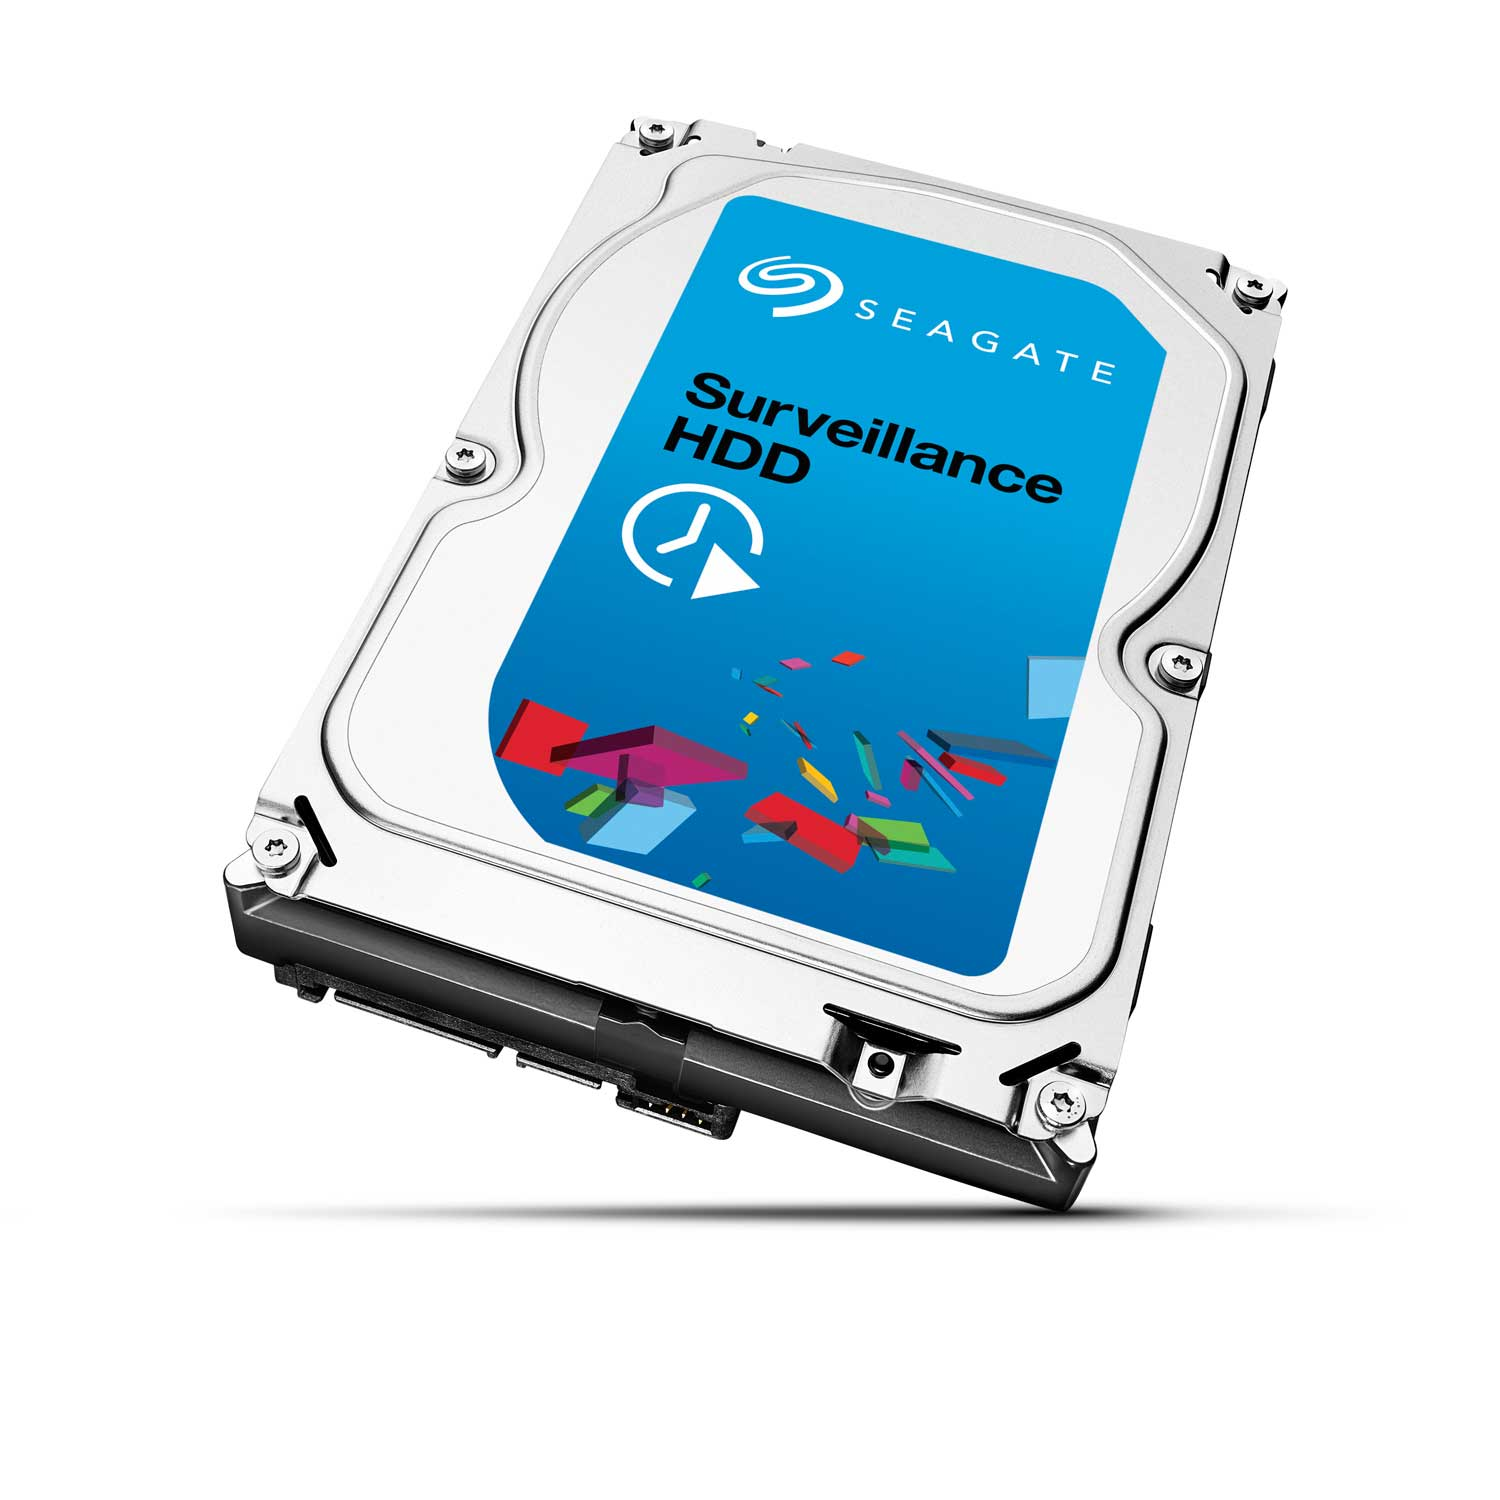 "Disque dur interne Seagate Surveillance HDD Series 2 To Disque Dur 3.5"" 2 To 7200 RPM 64 Mo Serial ATA 6 Gb/s (bulk) - (Garantie constructeur 3 ans)"